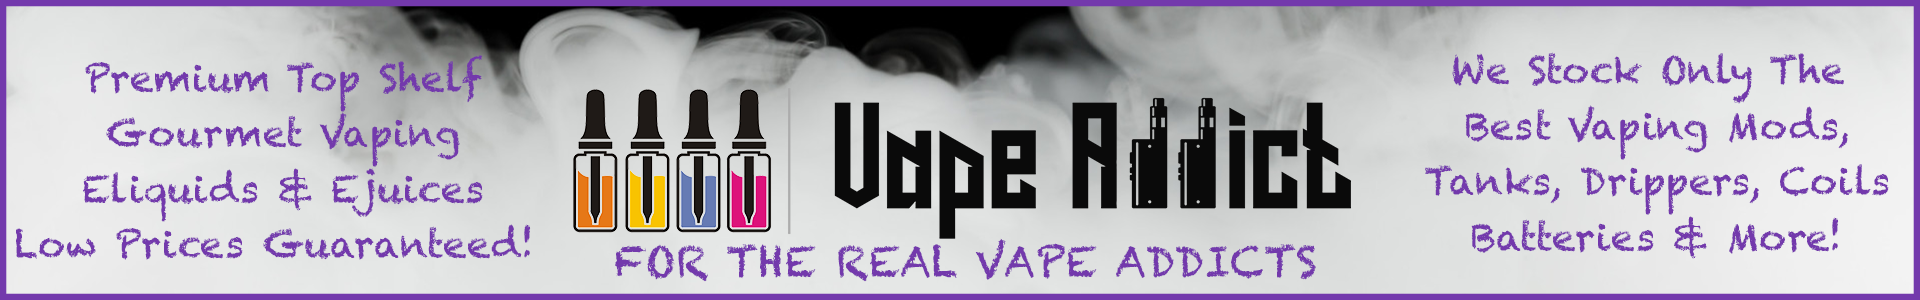 VapeAddict.co - Premium Vaping Eliquids & Ejuices - Vape Tanks, Mods, Drippers